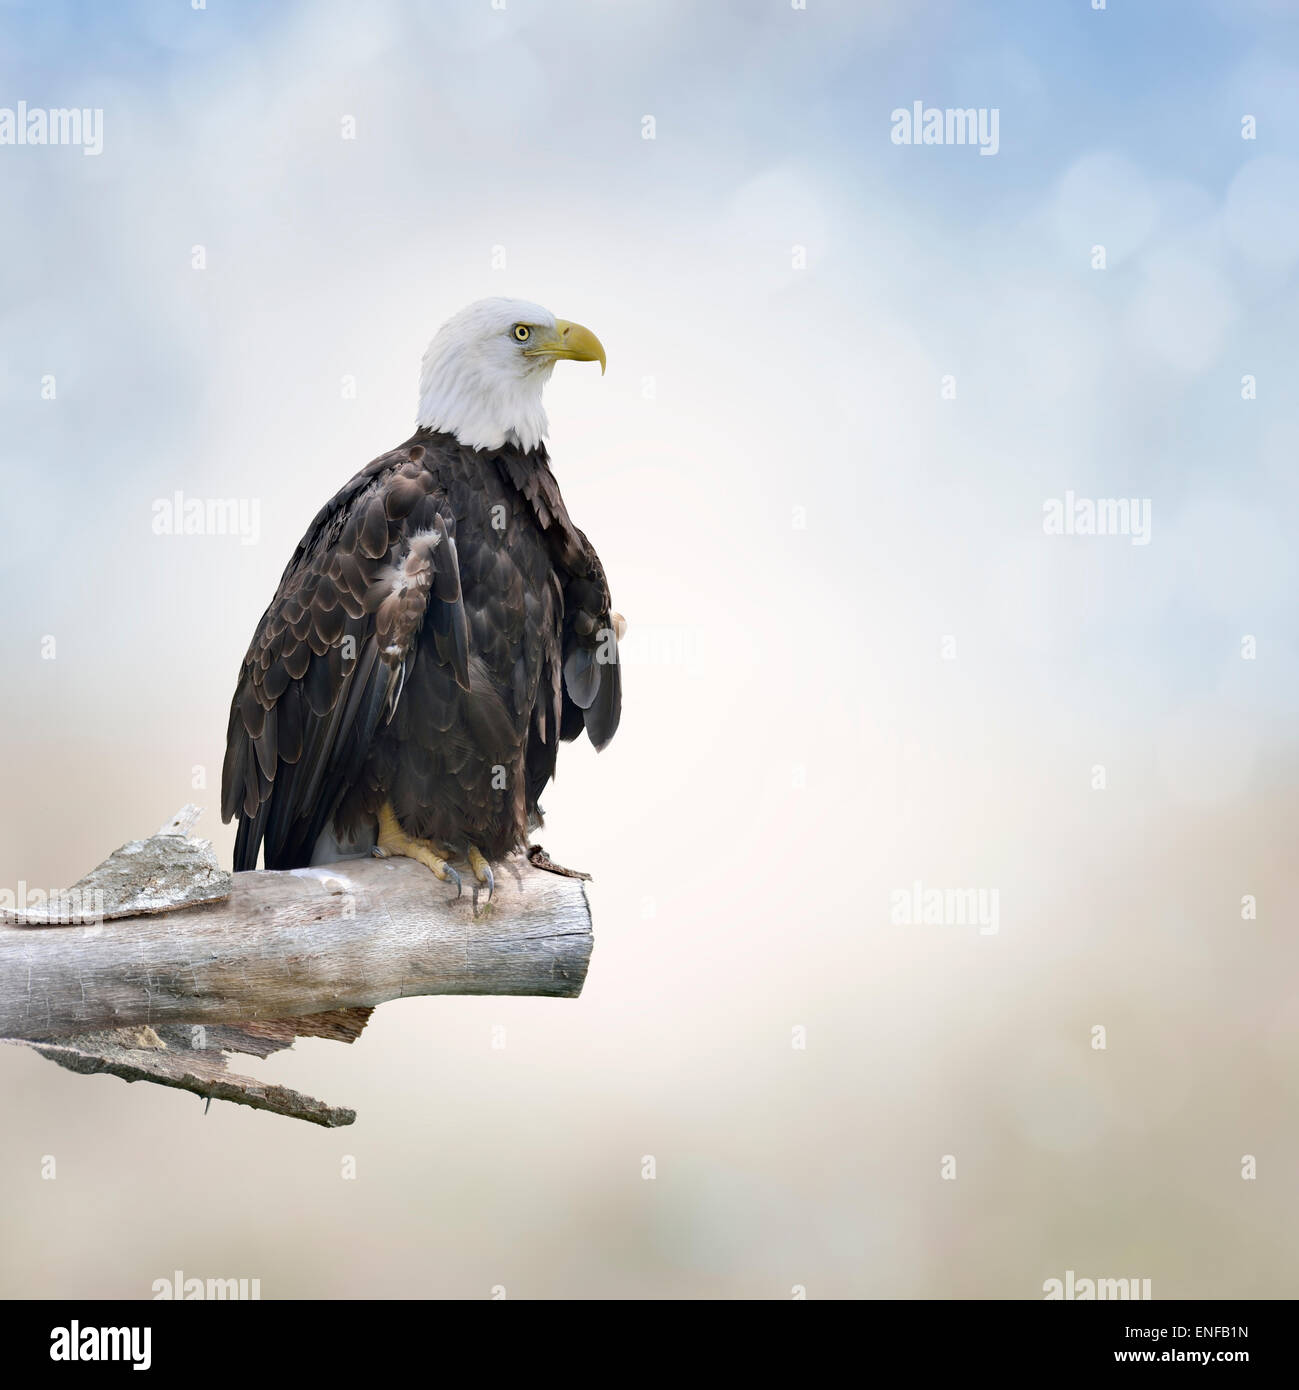 Bald Eagle Perched On A Log - Stock Image